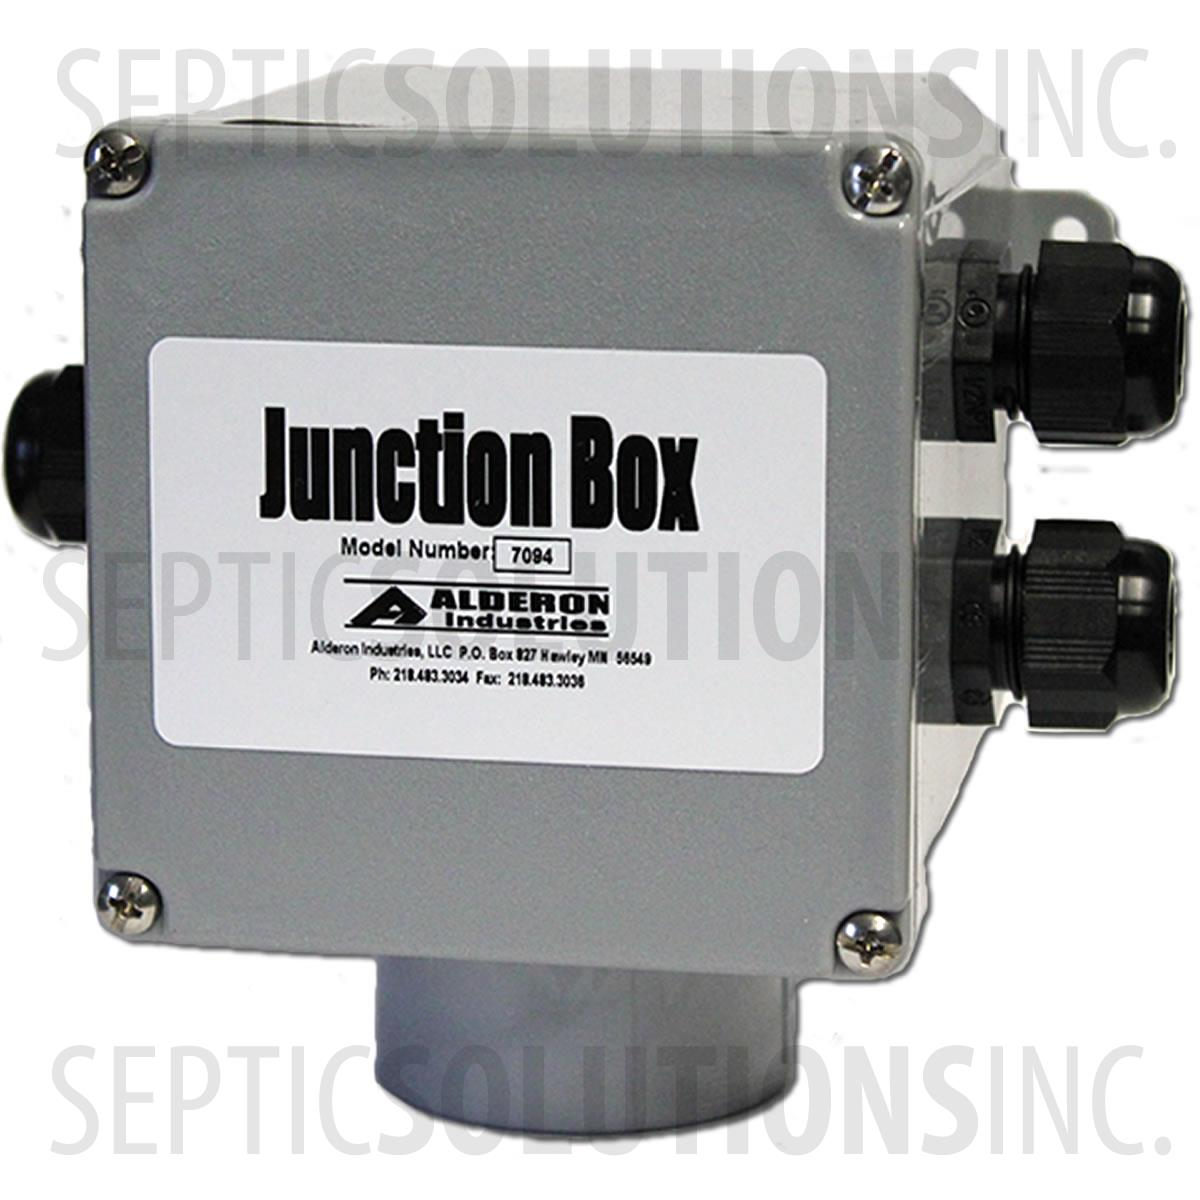 Services likewise Lift Station Diagram together with Diagram Of Septic System Pump With A Lift likewise 2 Pump Float Switch Wiring Diagram furthermore Easy S le Detail 114 30 Wiring Diagram Routing. on sewer pump control panel wiring diagram